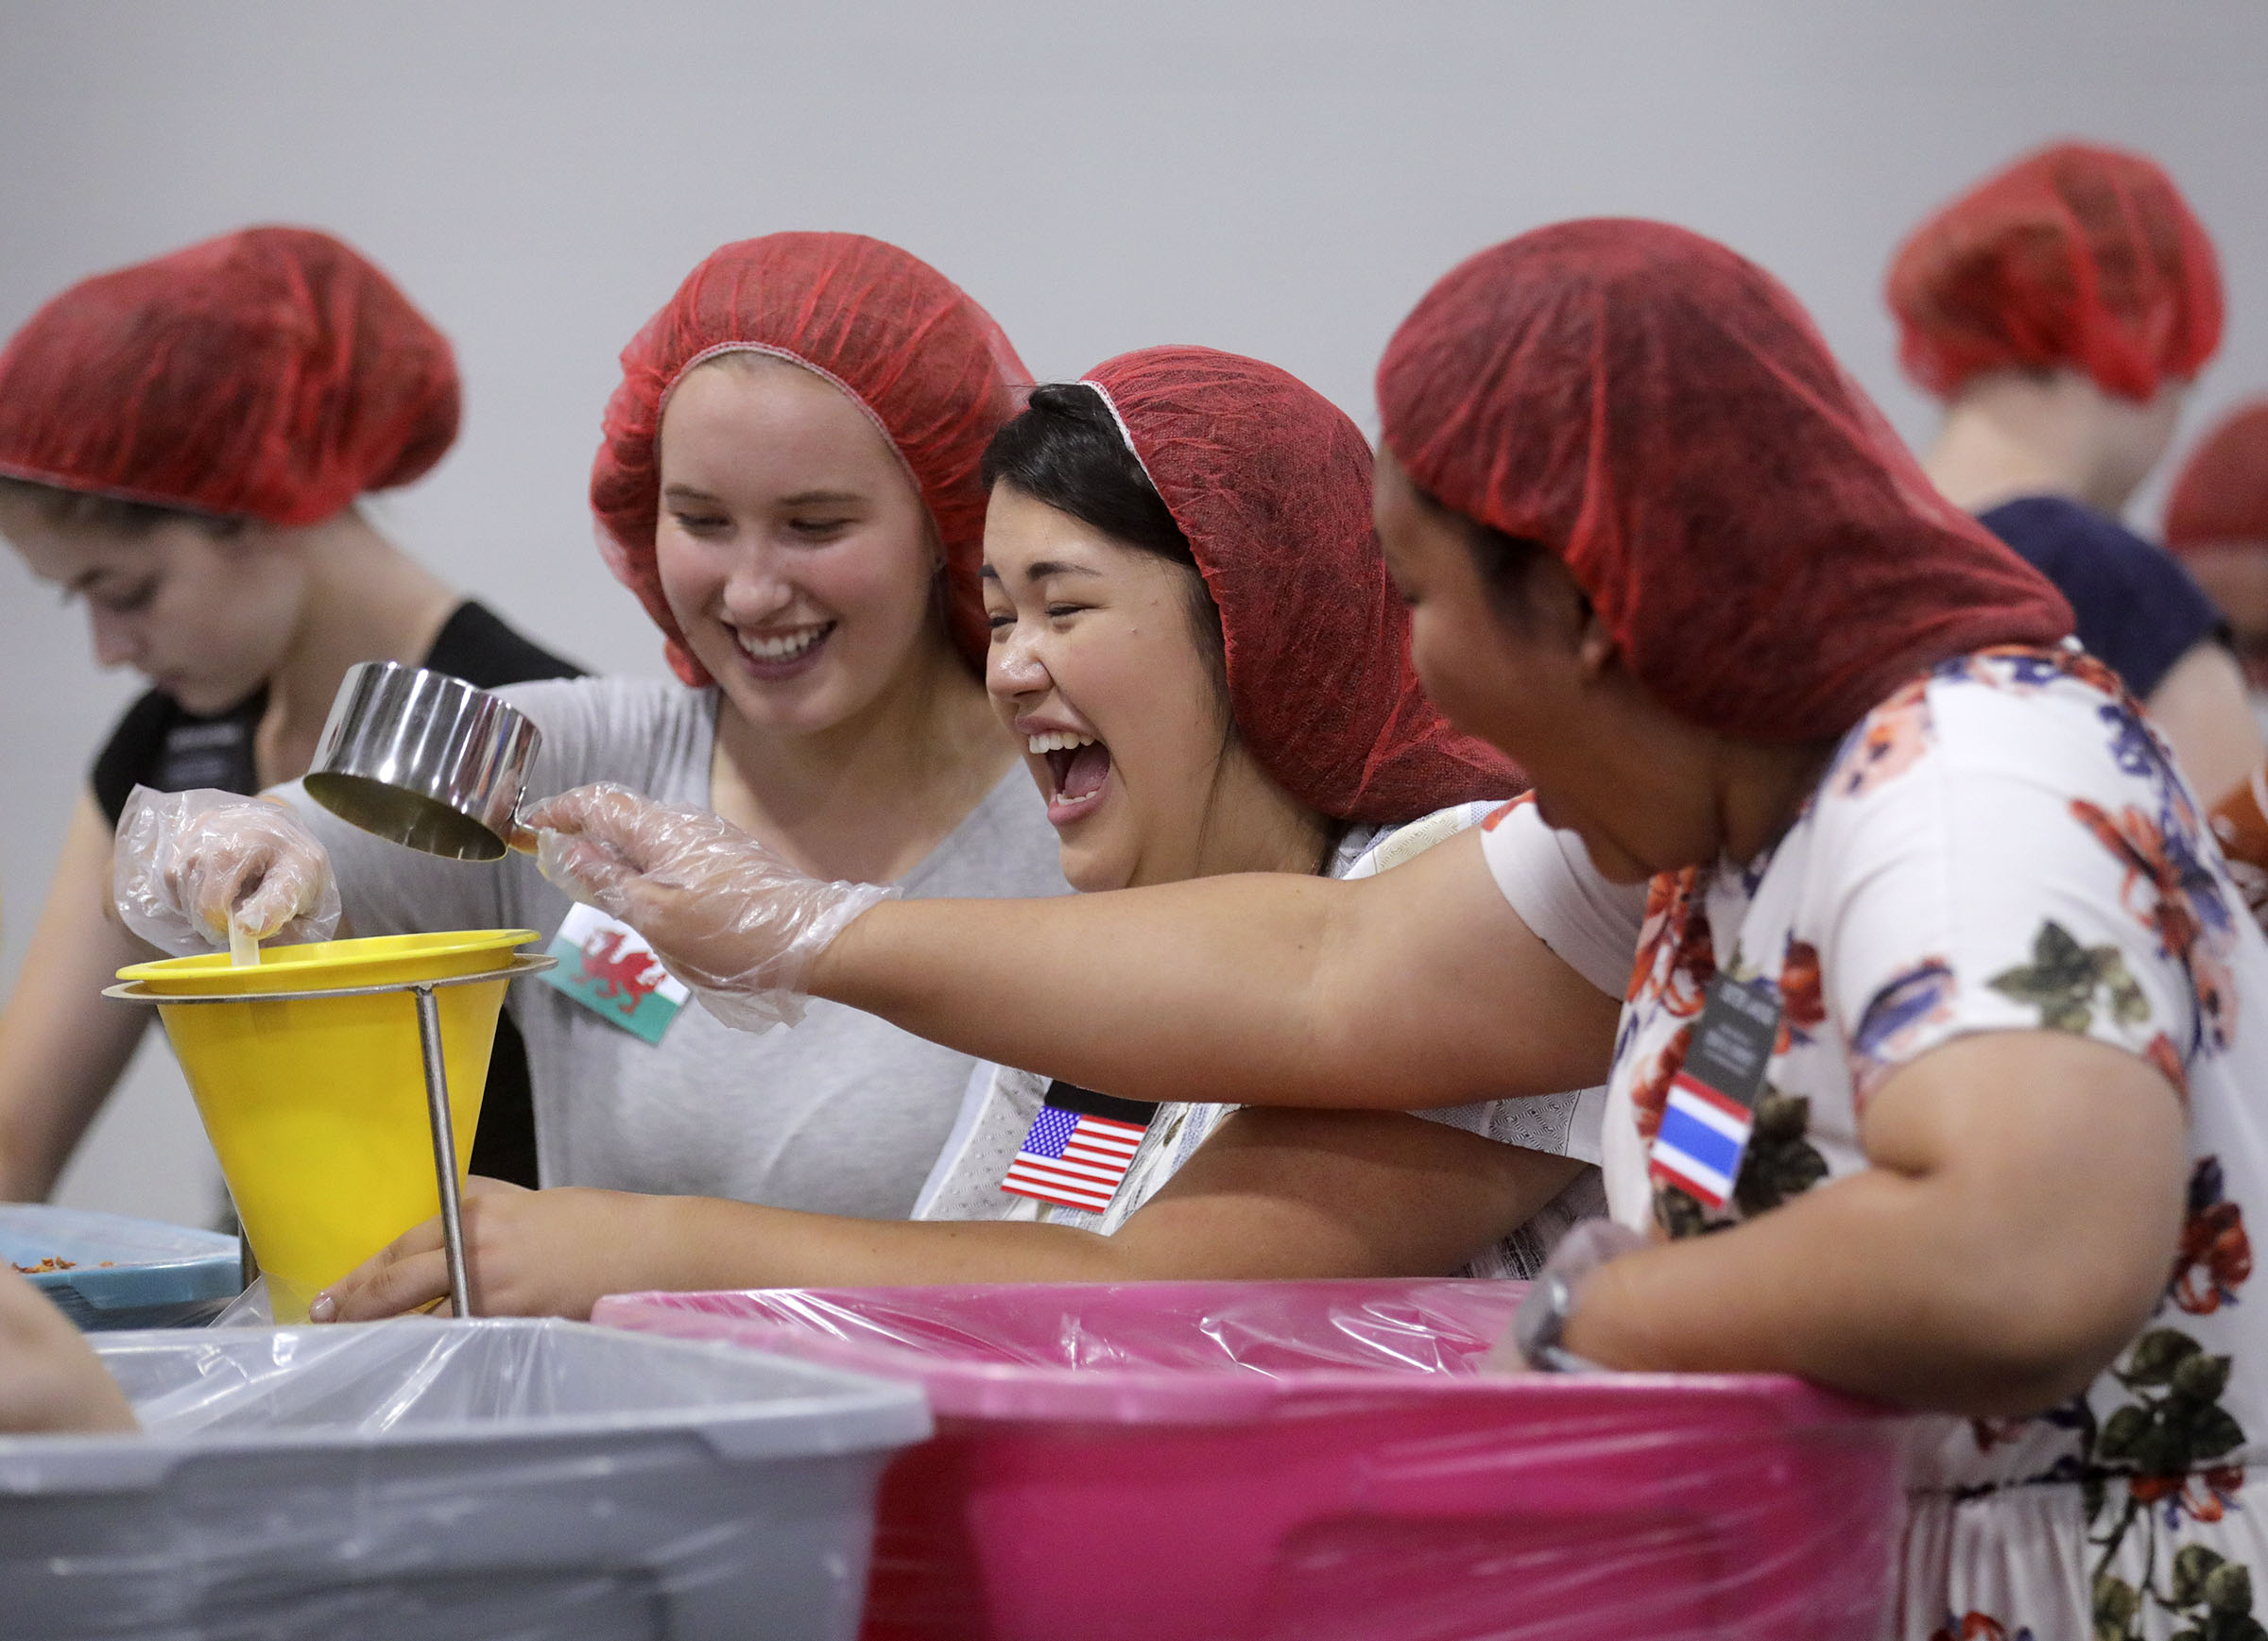 Sister Harriet Woods, Sister Sydny Short and Sister Supapon Jaikong — Temple Square missionaries — package pasta dinners for a service project during the 68th United Nations Civil Society Conference at the Salt Palace Convention Center in Salt Lake City on Monday, Aug. 26, 2019.